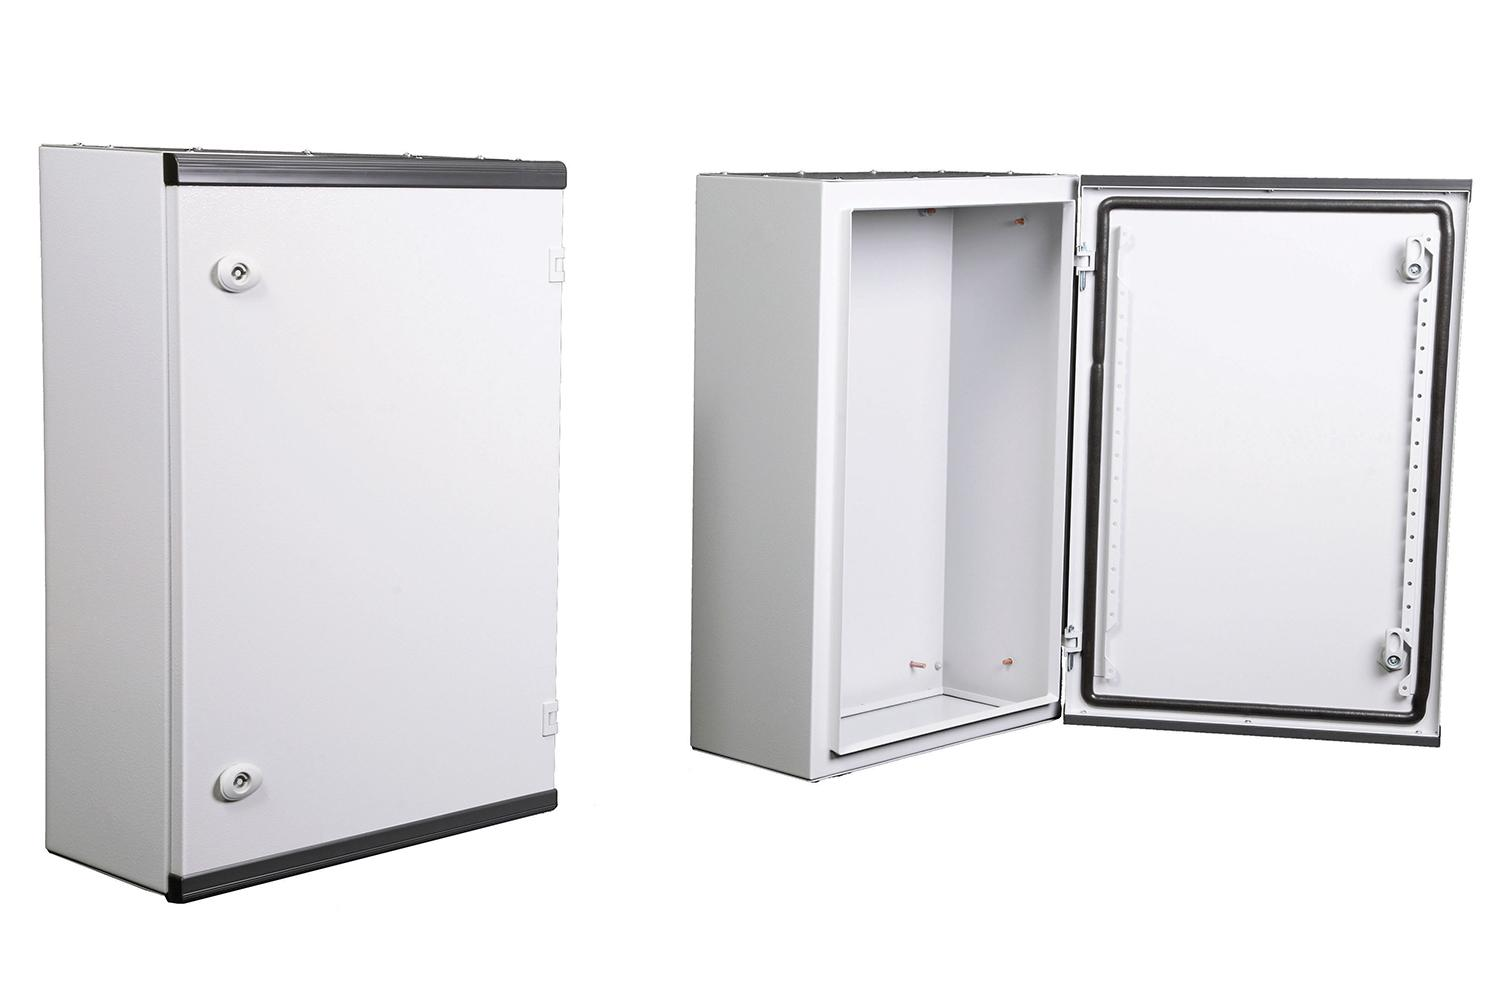 Ares Series WALL MOUNTED ENCLOSURES -  SOLID DOOR, WITHOUT MOUNTING PLATE